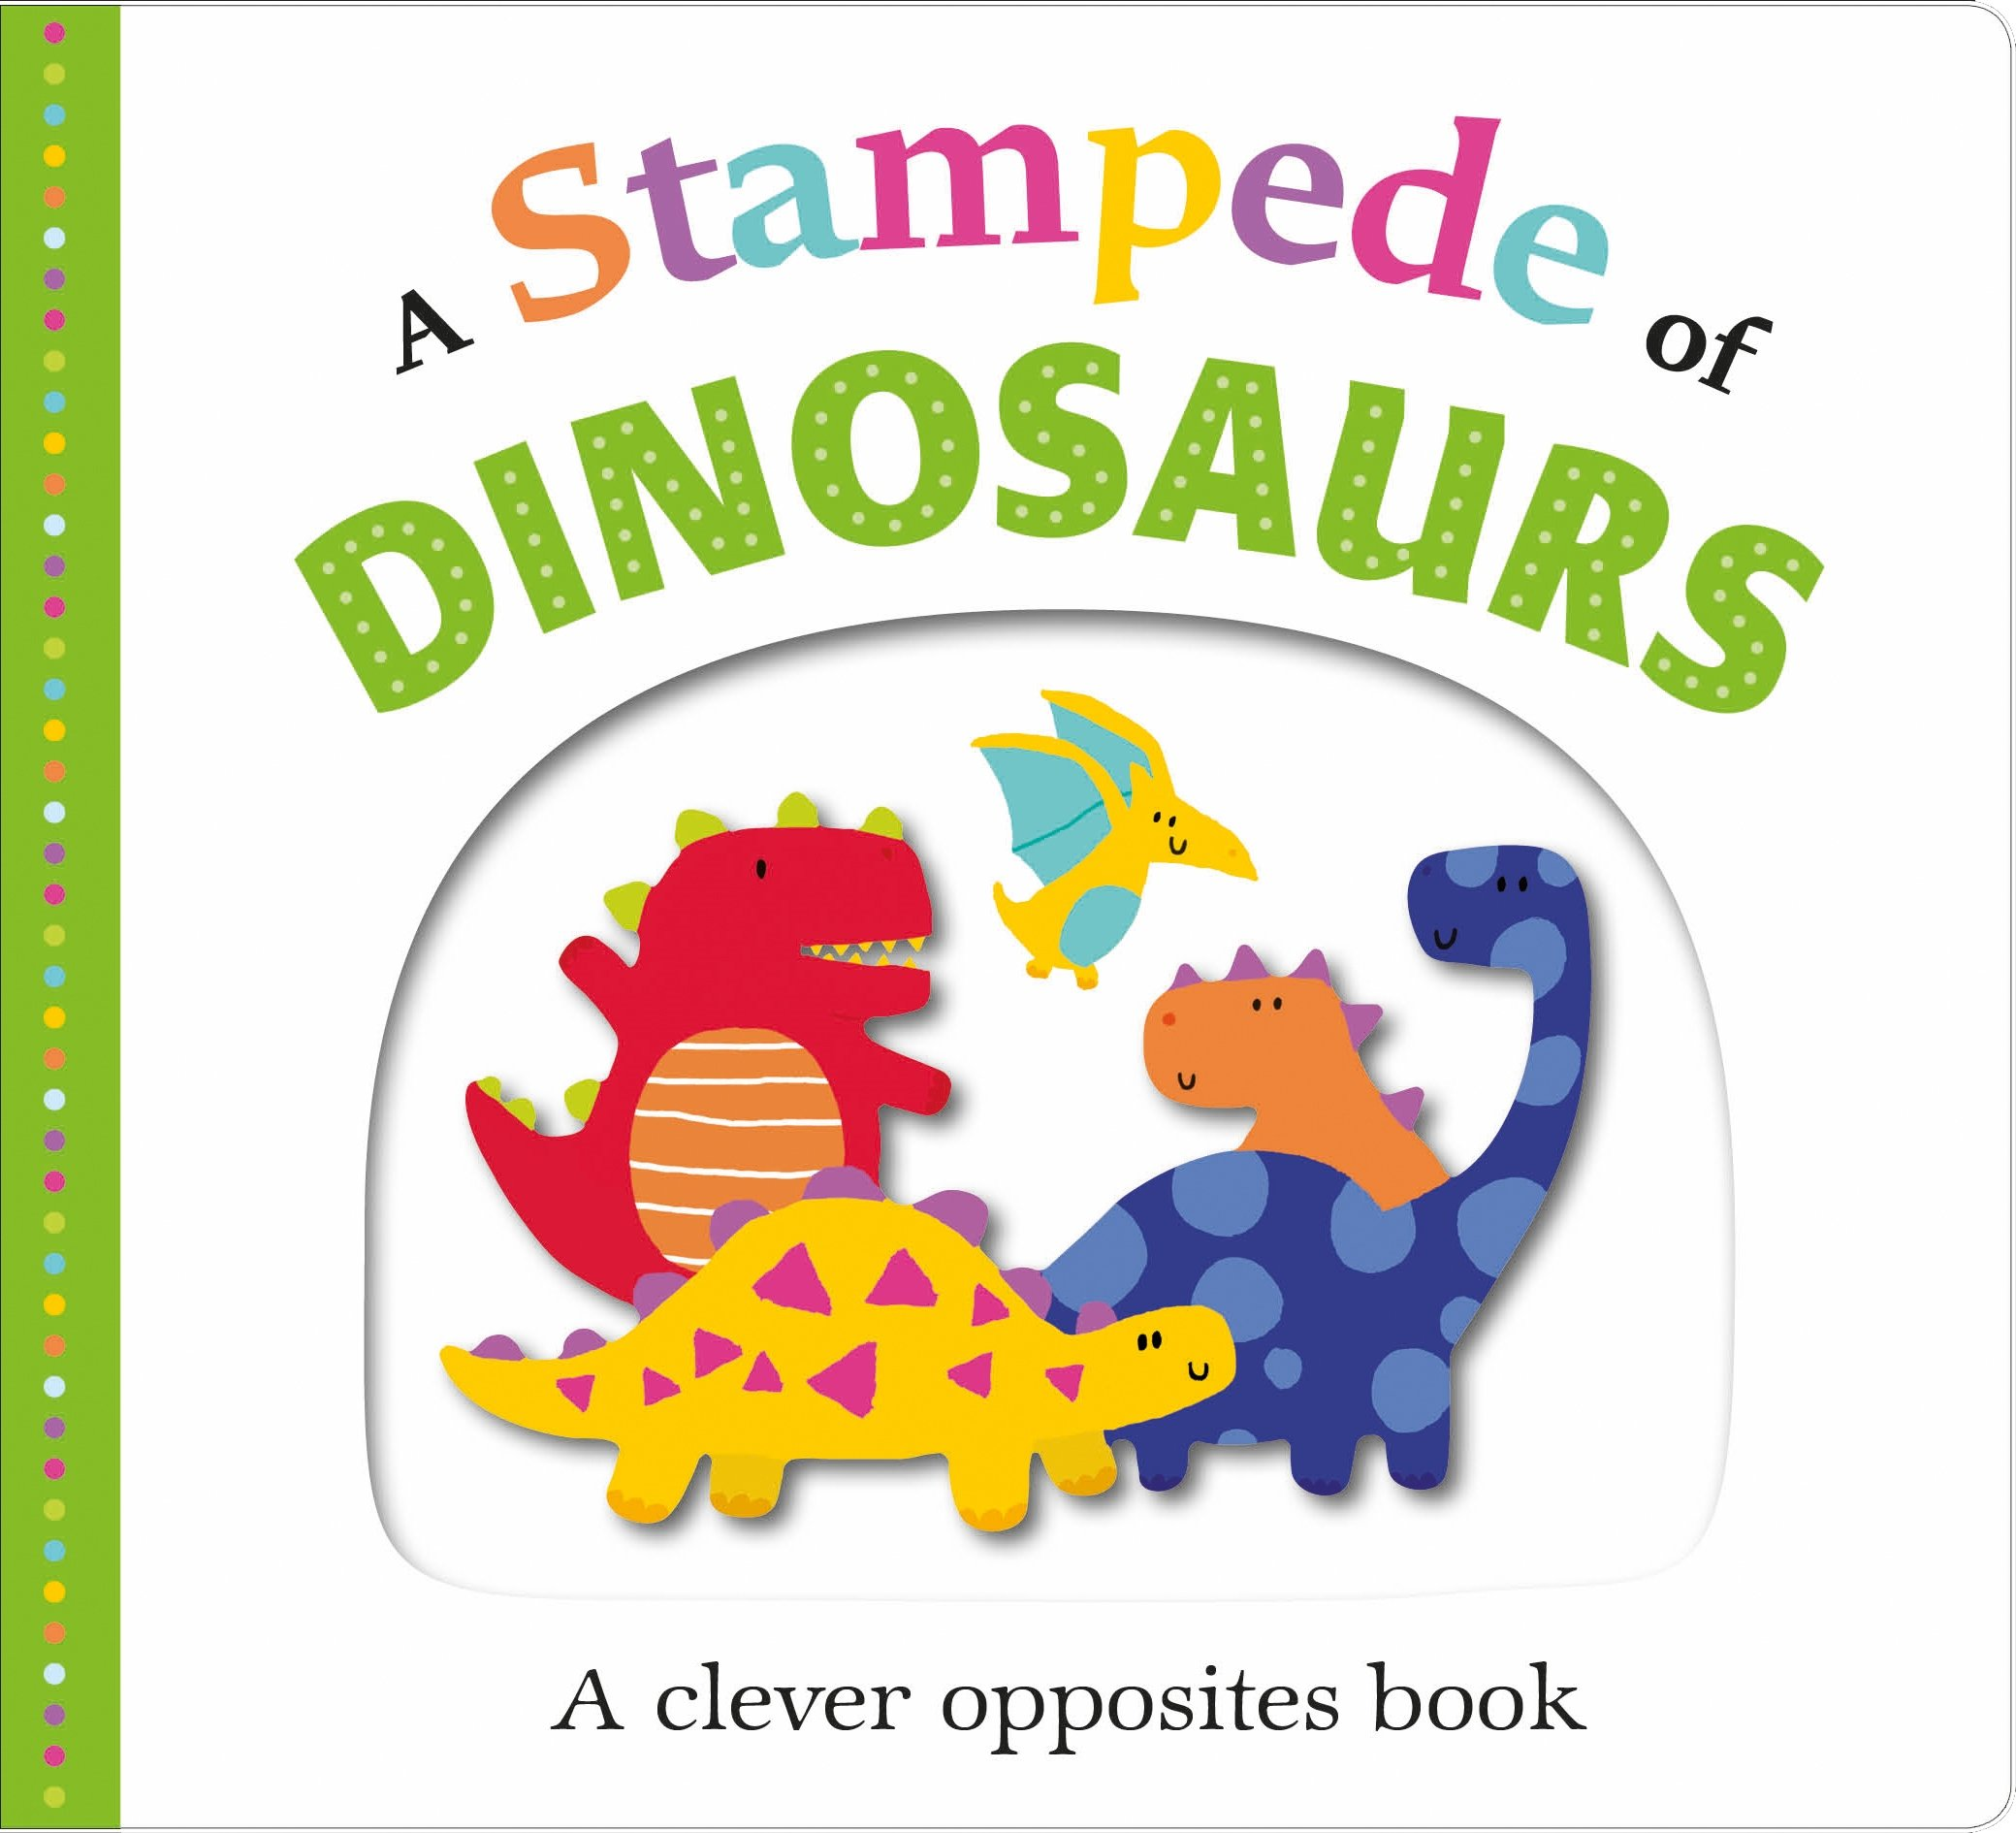 Picture Fit Board Books A Stampede Of Dinosaurs An Alphaprints Animal Opposites Book 9780312522988 Roger Priddy